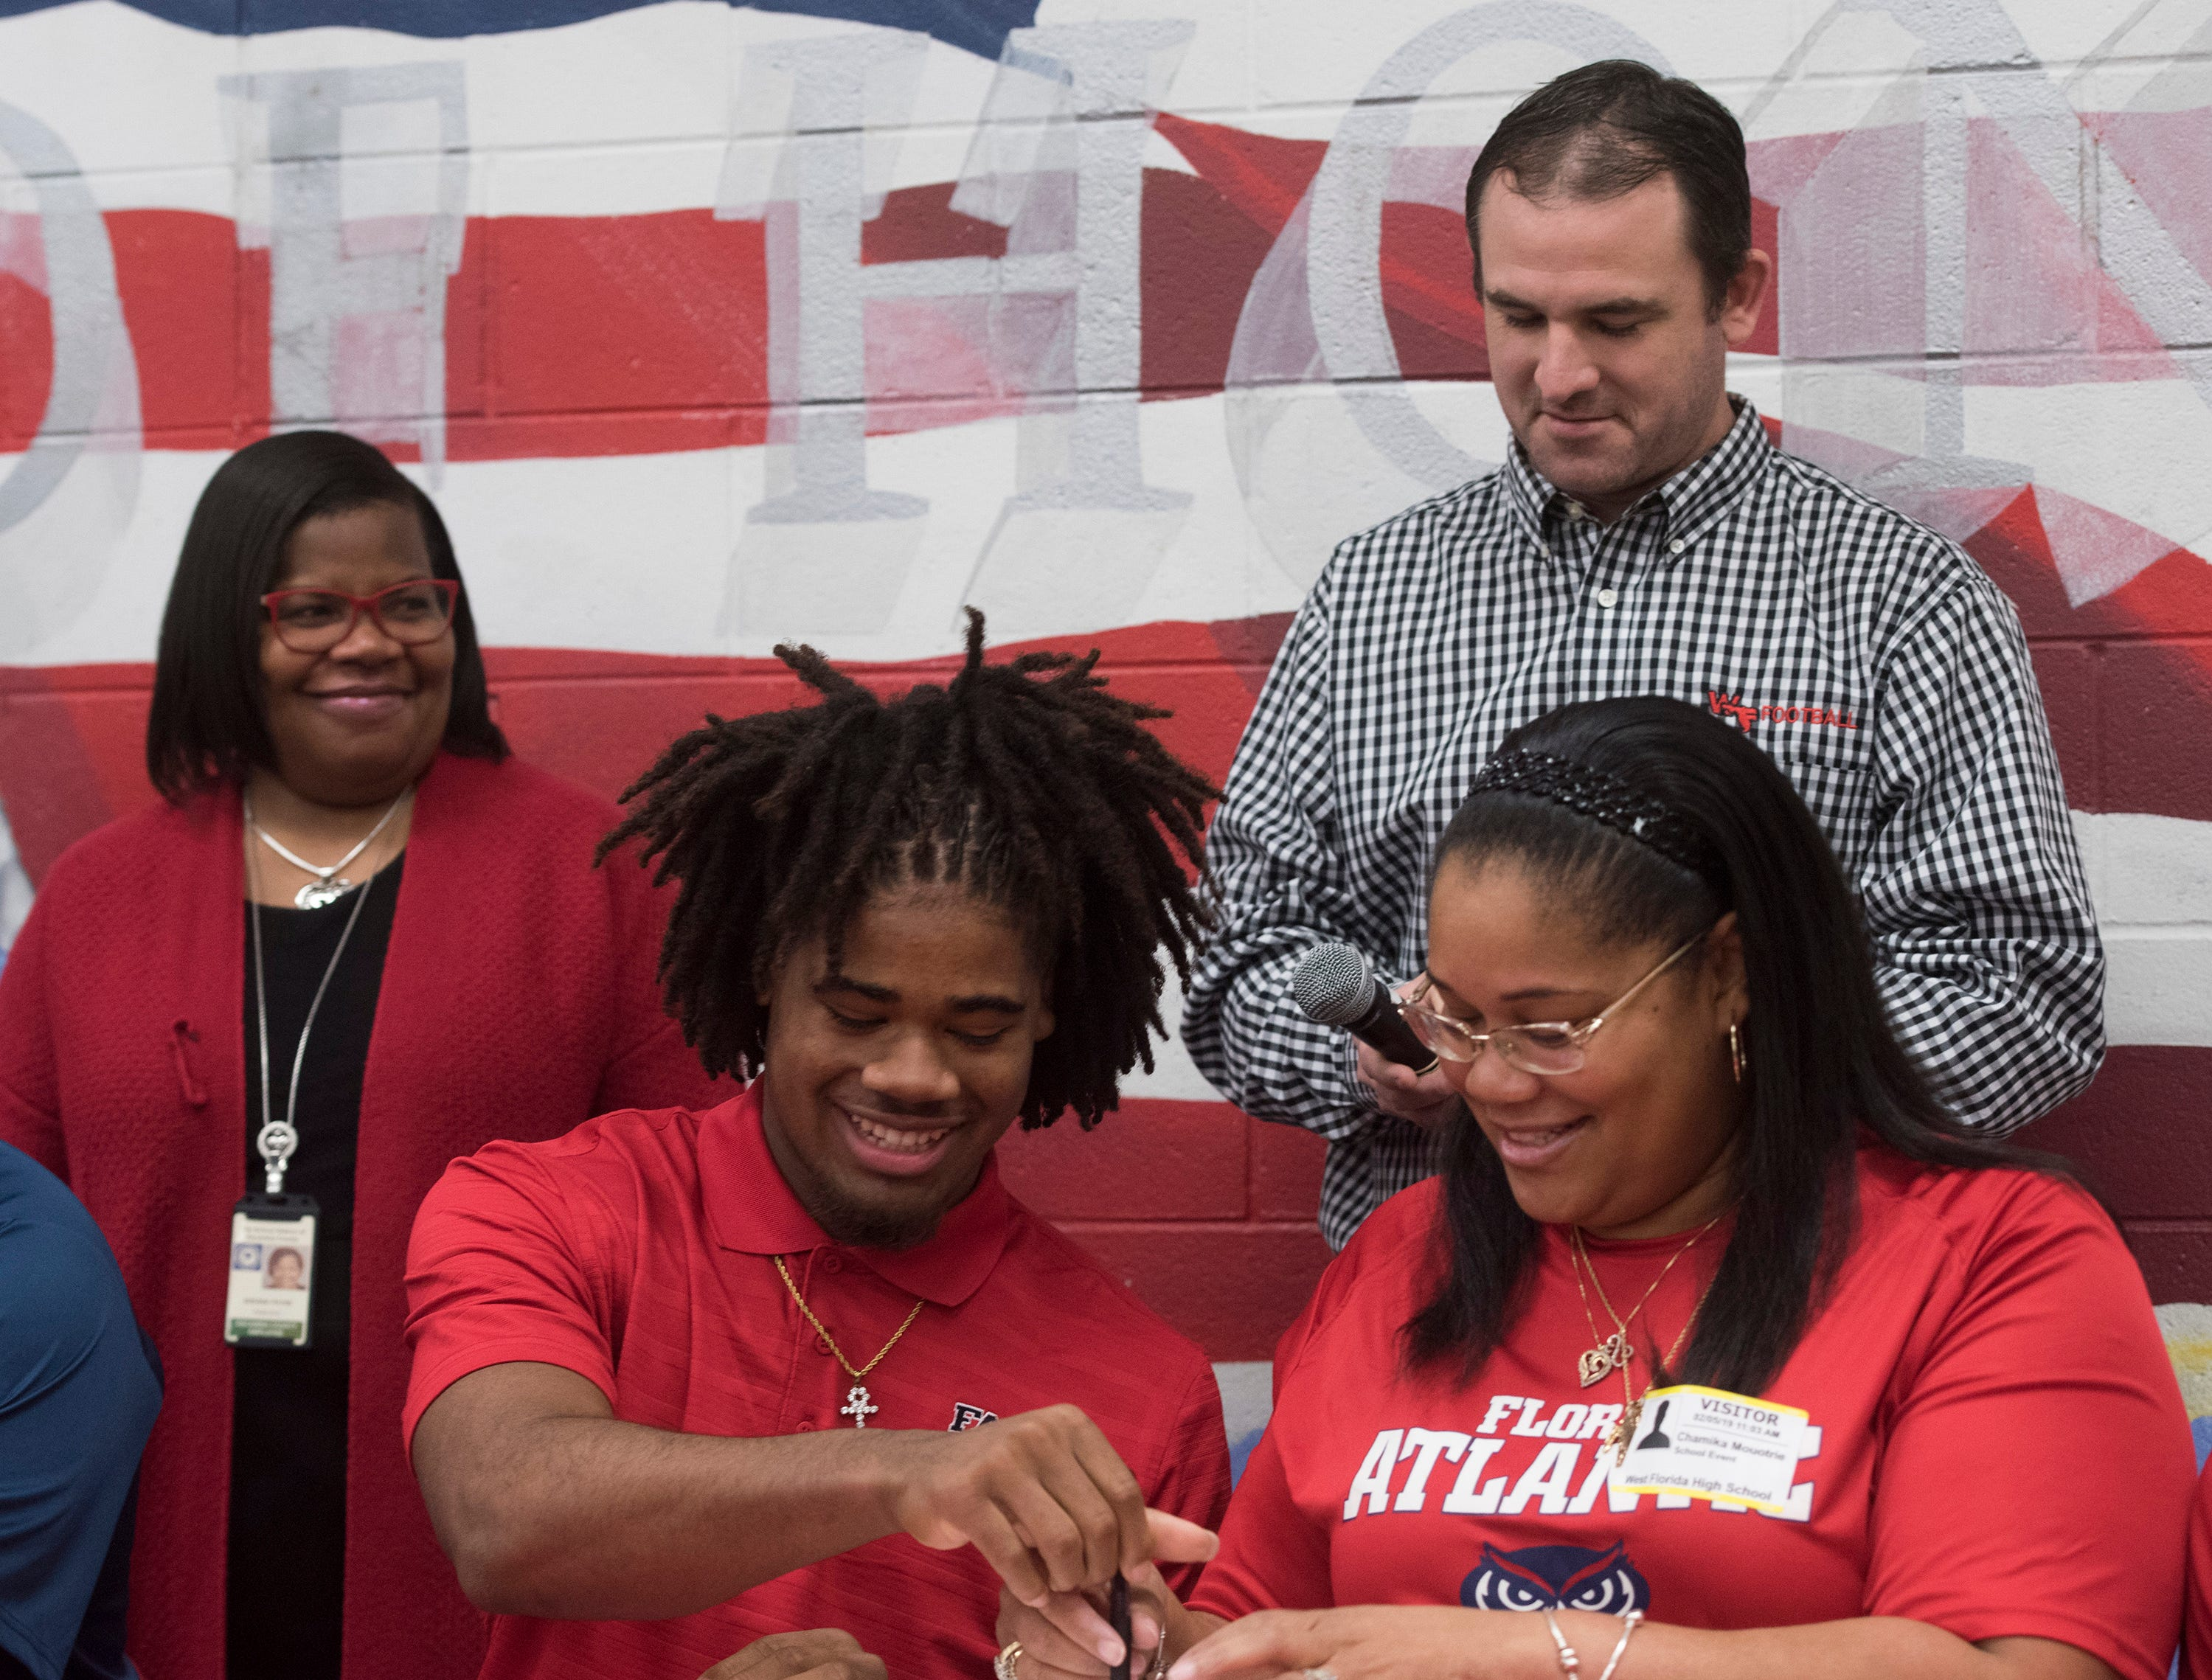 West Florida High School's Antarius Moultrie commits to the Florida Atlantic University on National Signing Day on Wednesday Feb.6, 2019.